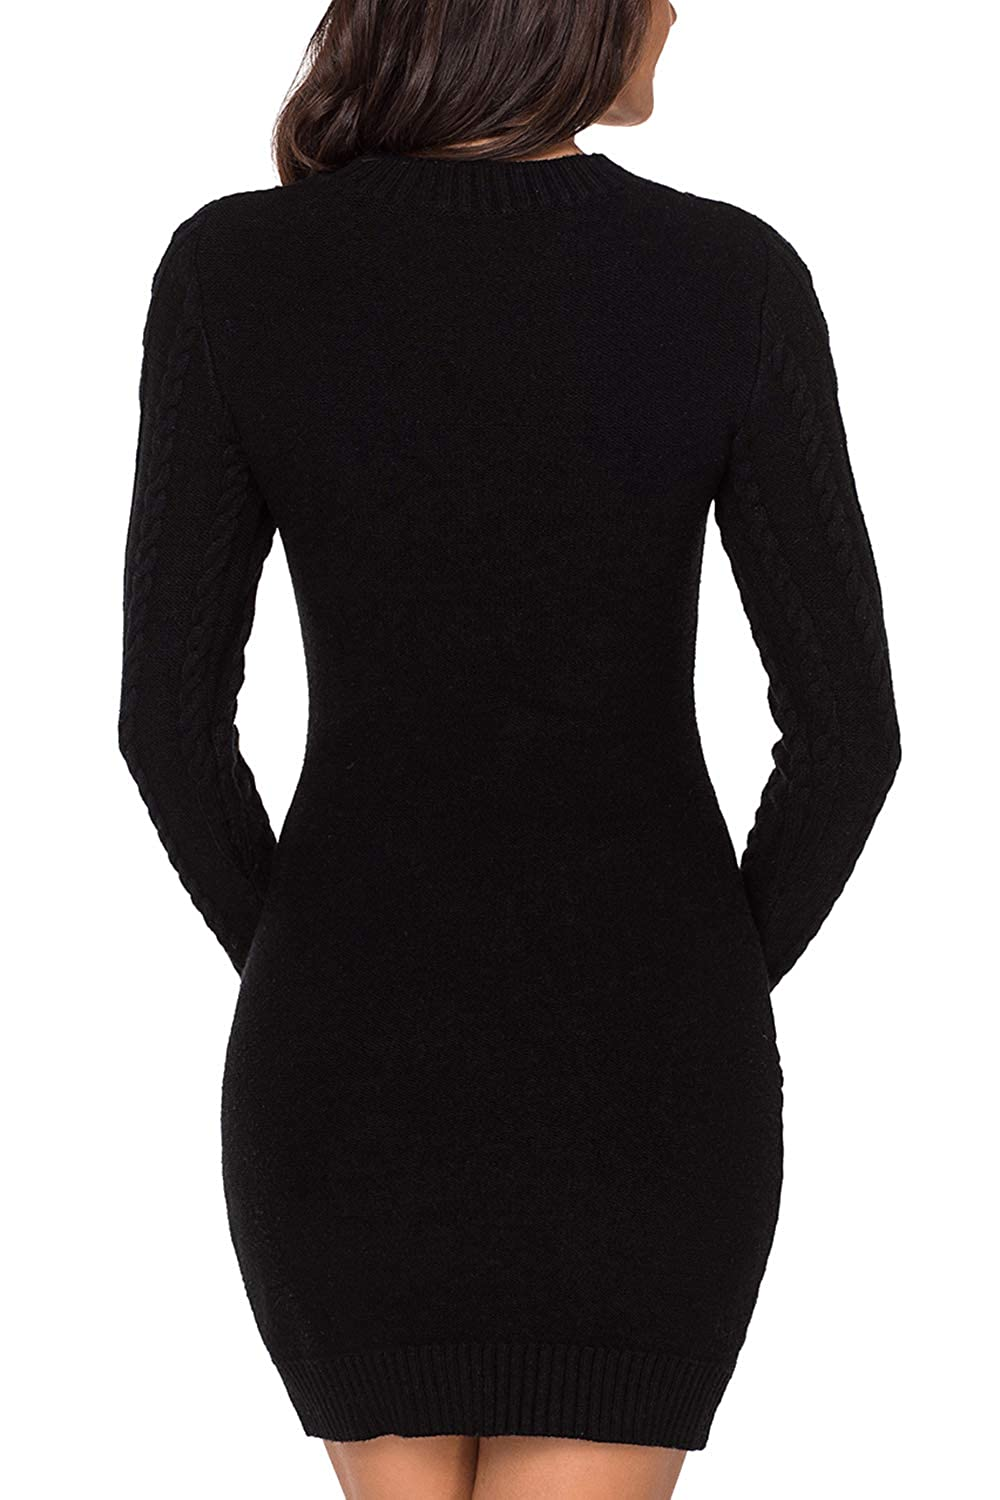 db0138a4137 LaSuiveur Women s Slim Fit Cable Knit Long Sleeve Sweater Dress at Amazon  Women s Clothing store